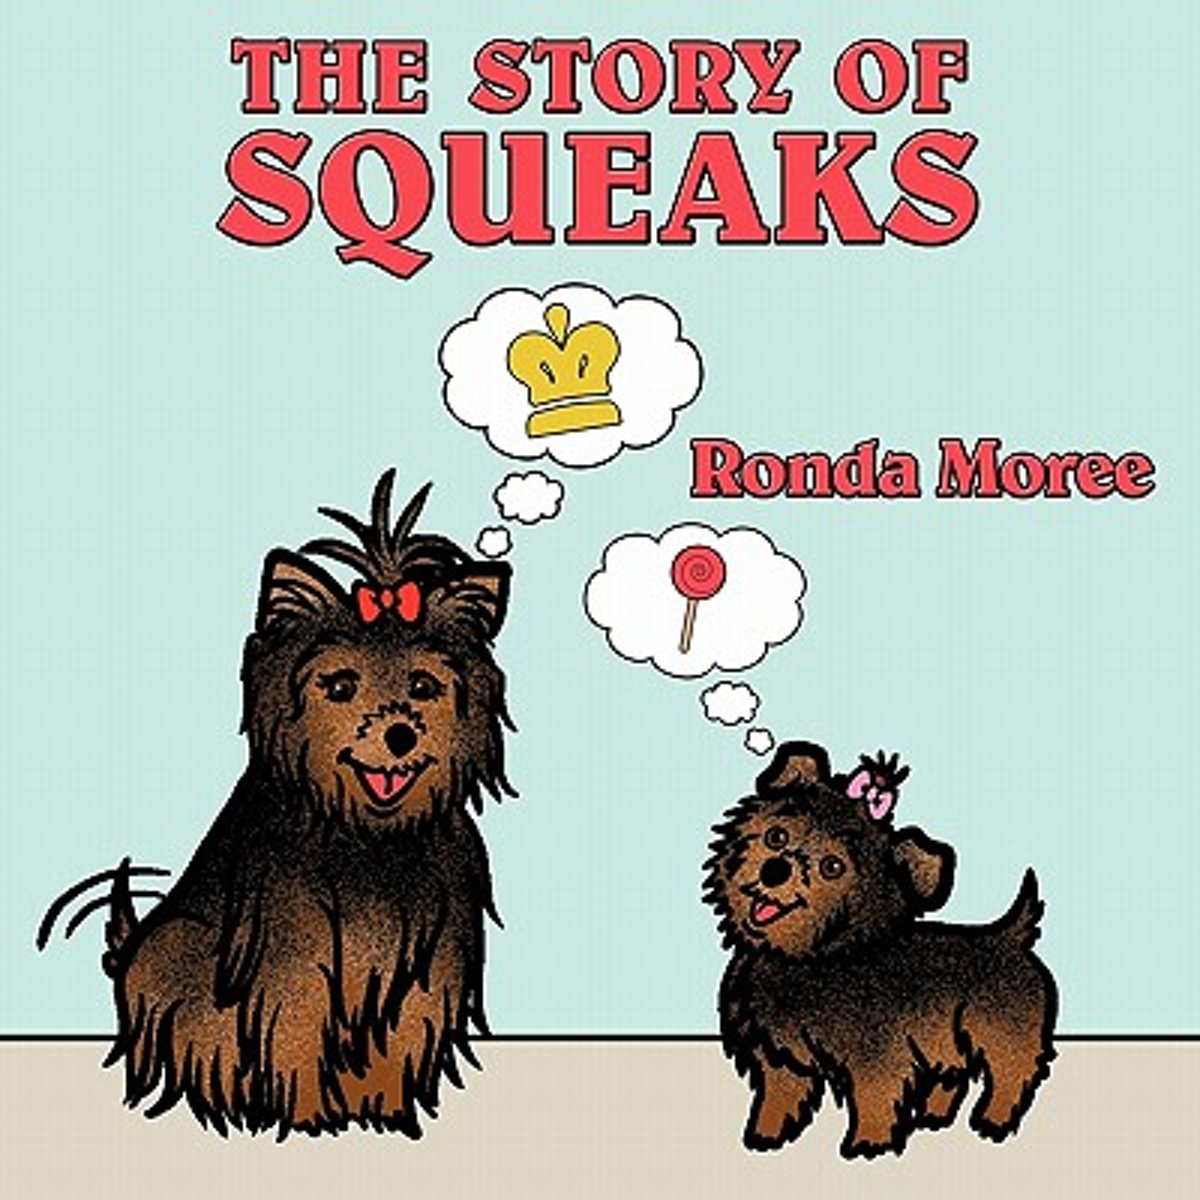 The Story Of Squeaks